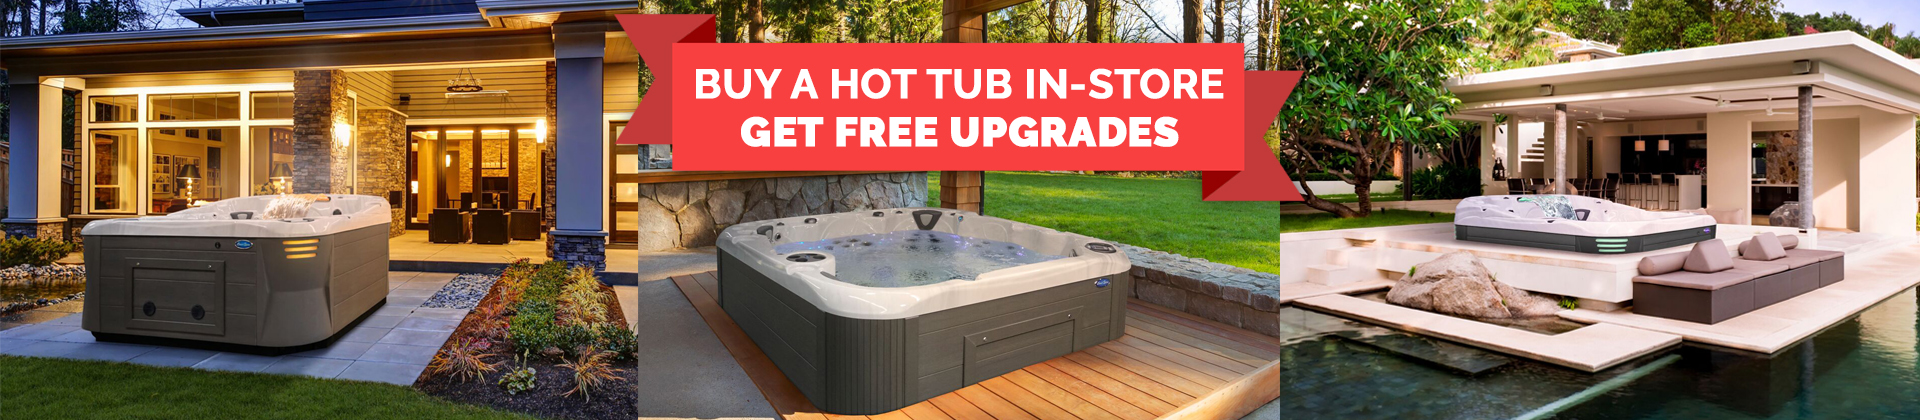 Hot Tub Deals February Offers